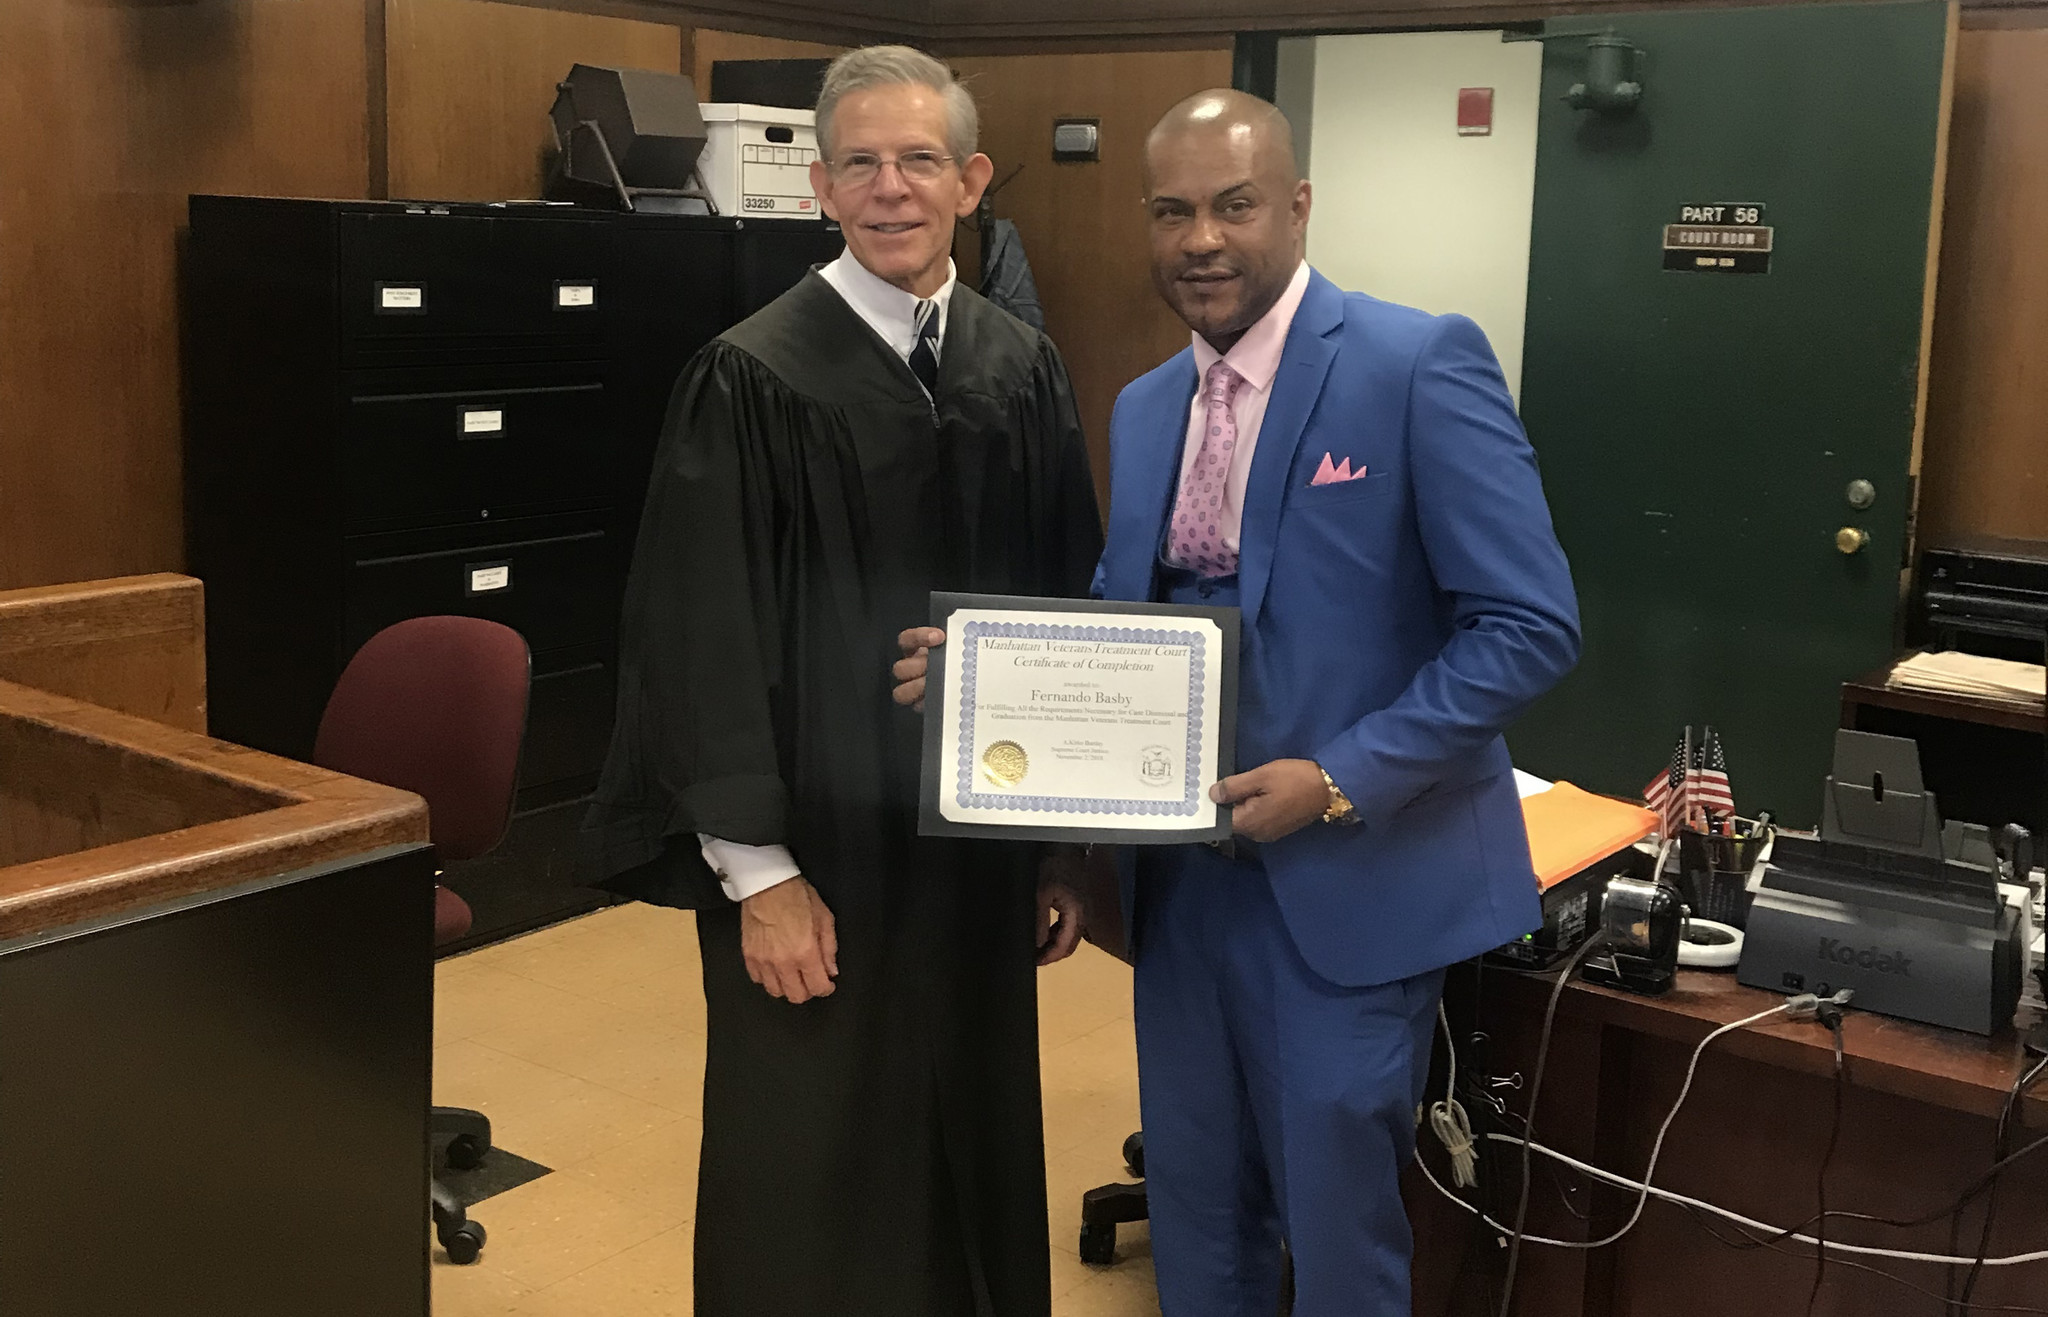 Ex-National Guard soldier who kicked drugs graduates from Manhattan Veterans Treatment Court | New York Daily News